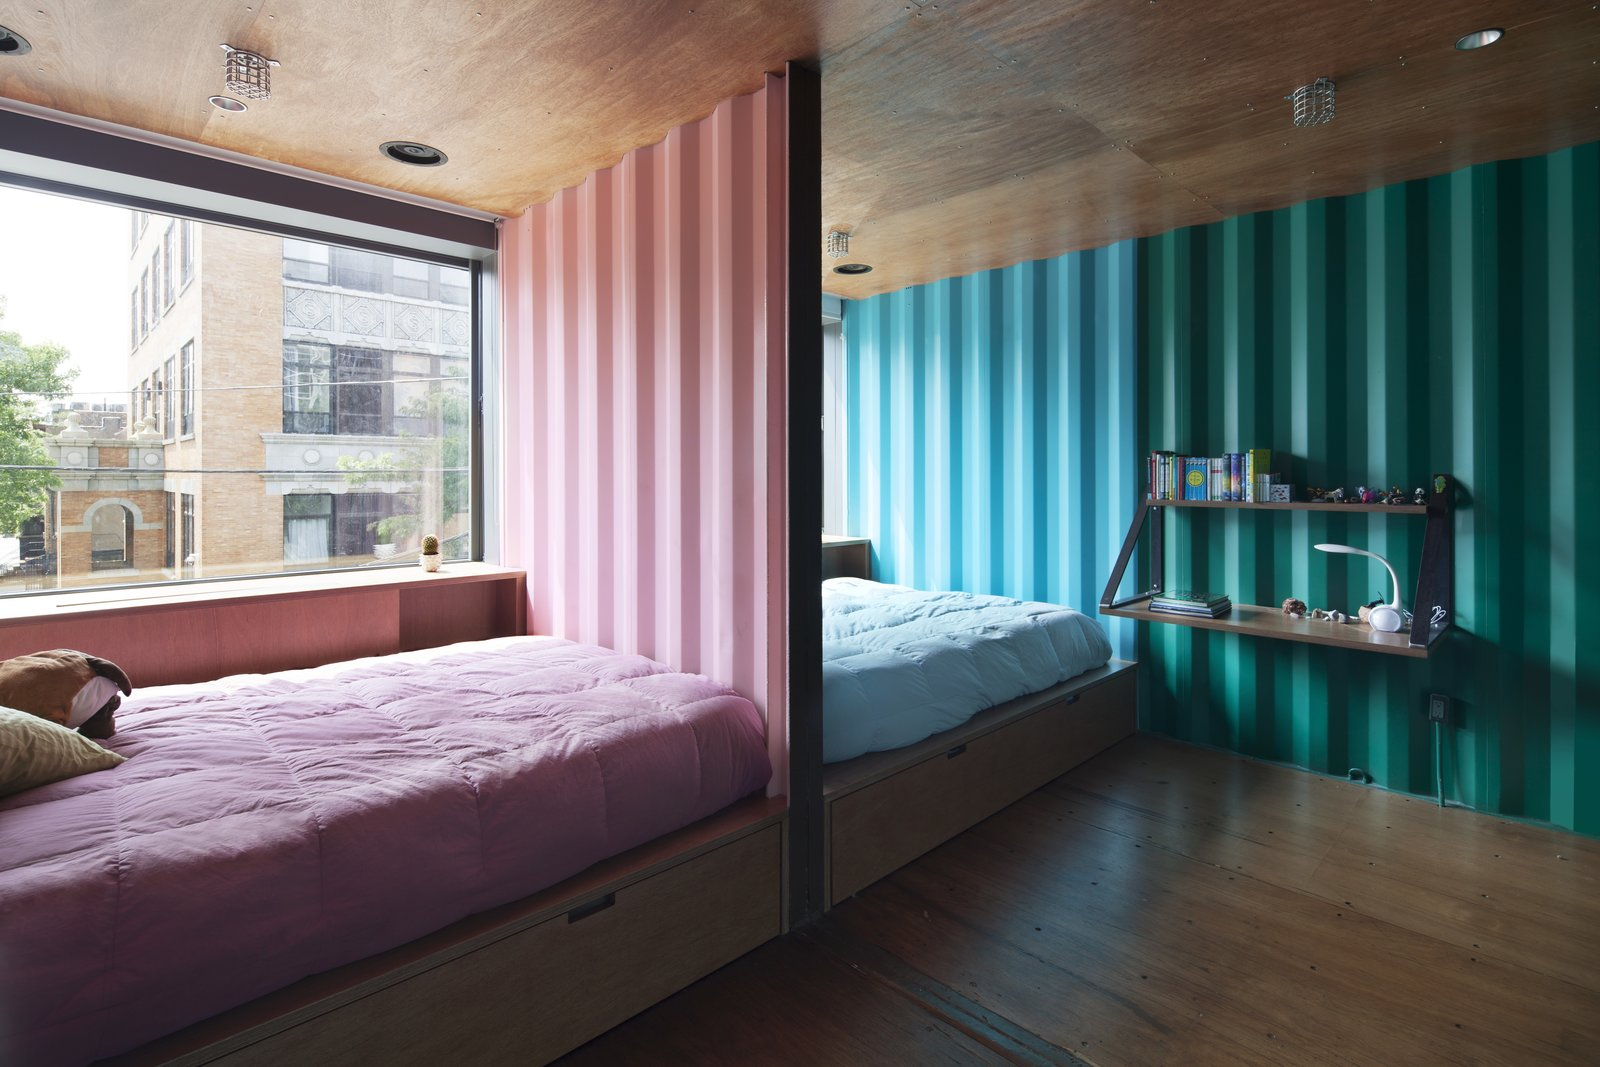 Bedroom, Bed, Shelves, Recessed Lighting, and Medium Hardwood Floor  Photo 10 of 13 in An Amazing Home in Brooklyn Made Out of 21 Shipping Containers